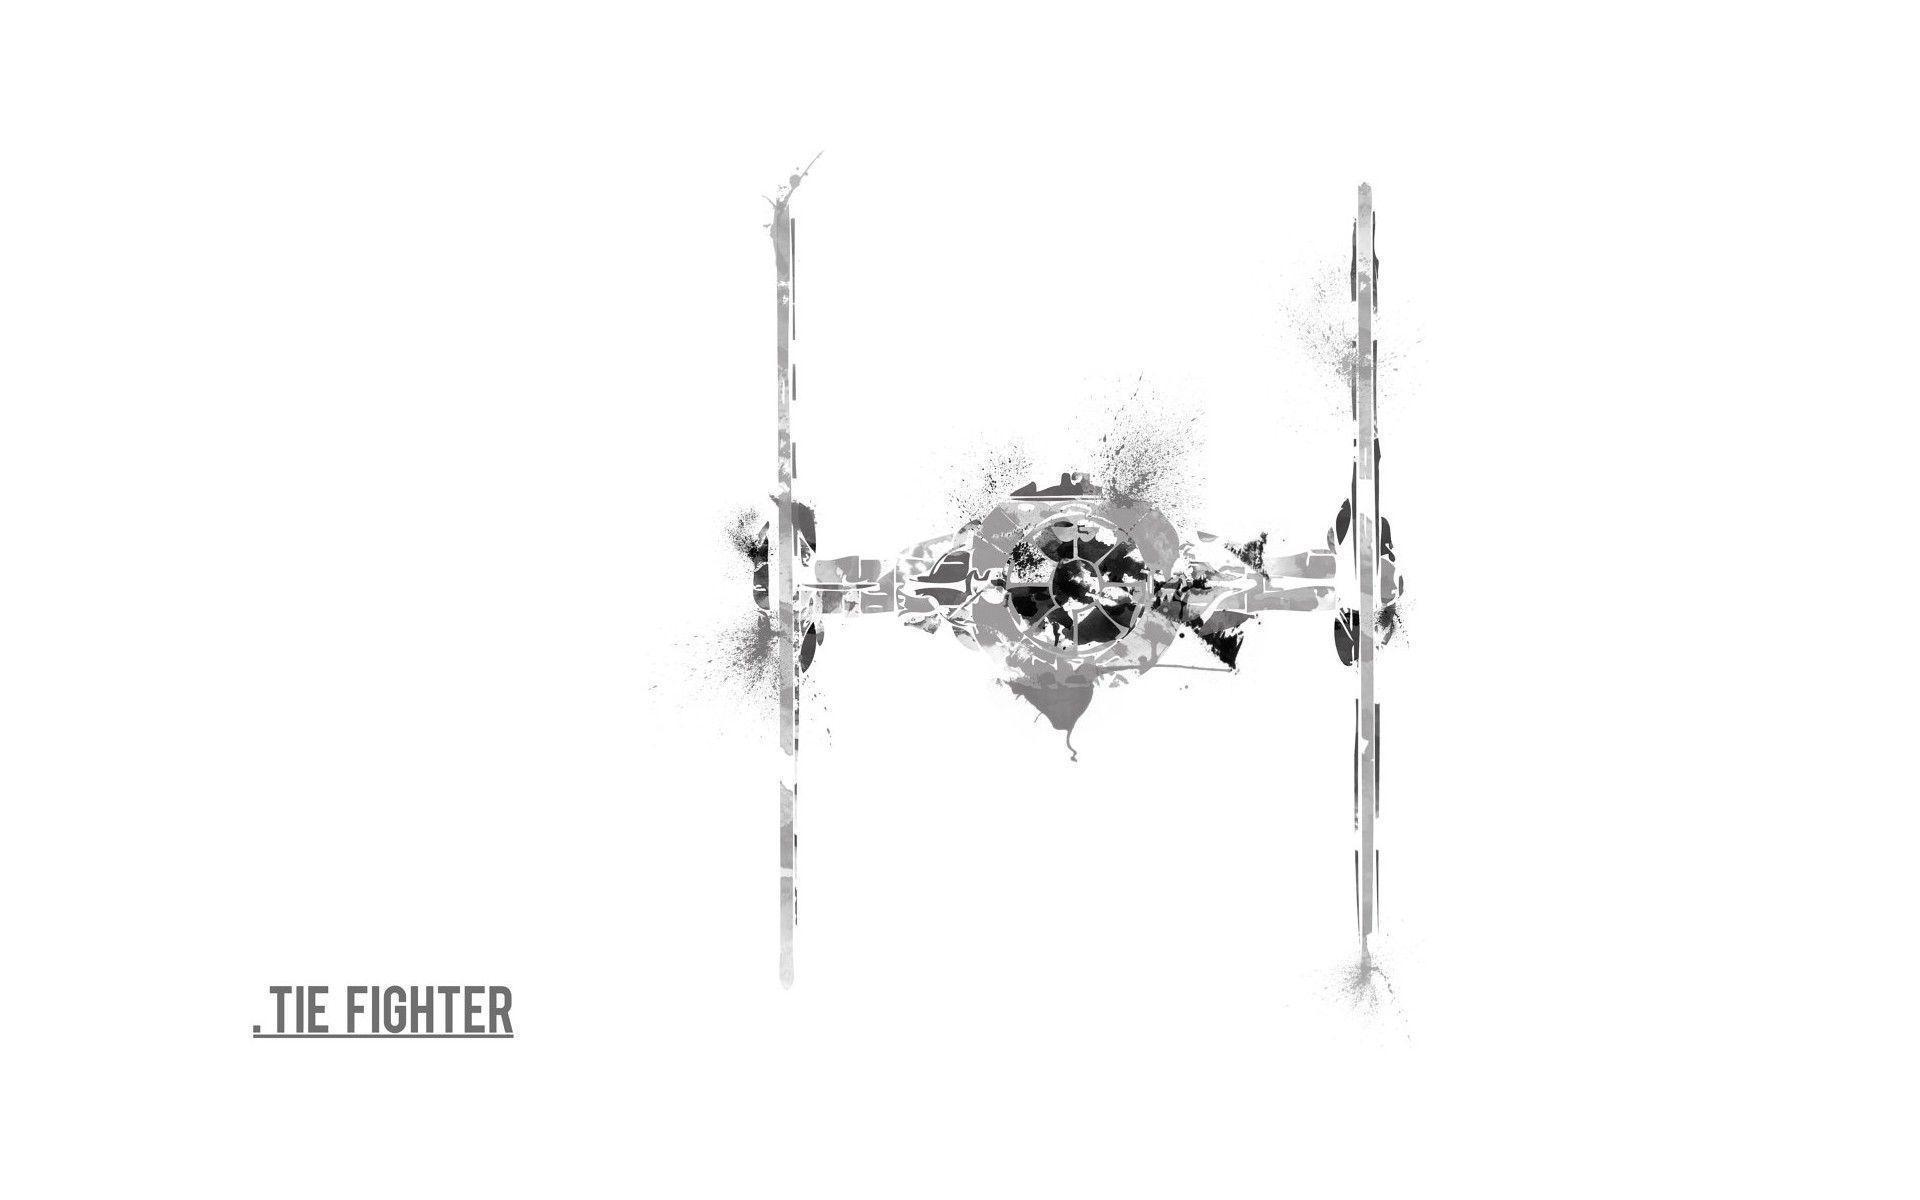 X Wing Fighter Iphone Wallpaper Tie Fighter Wallpapers Wallpaper Cave